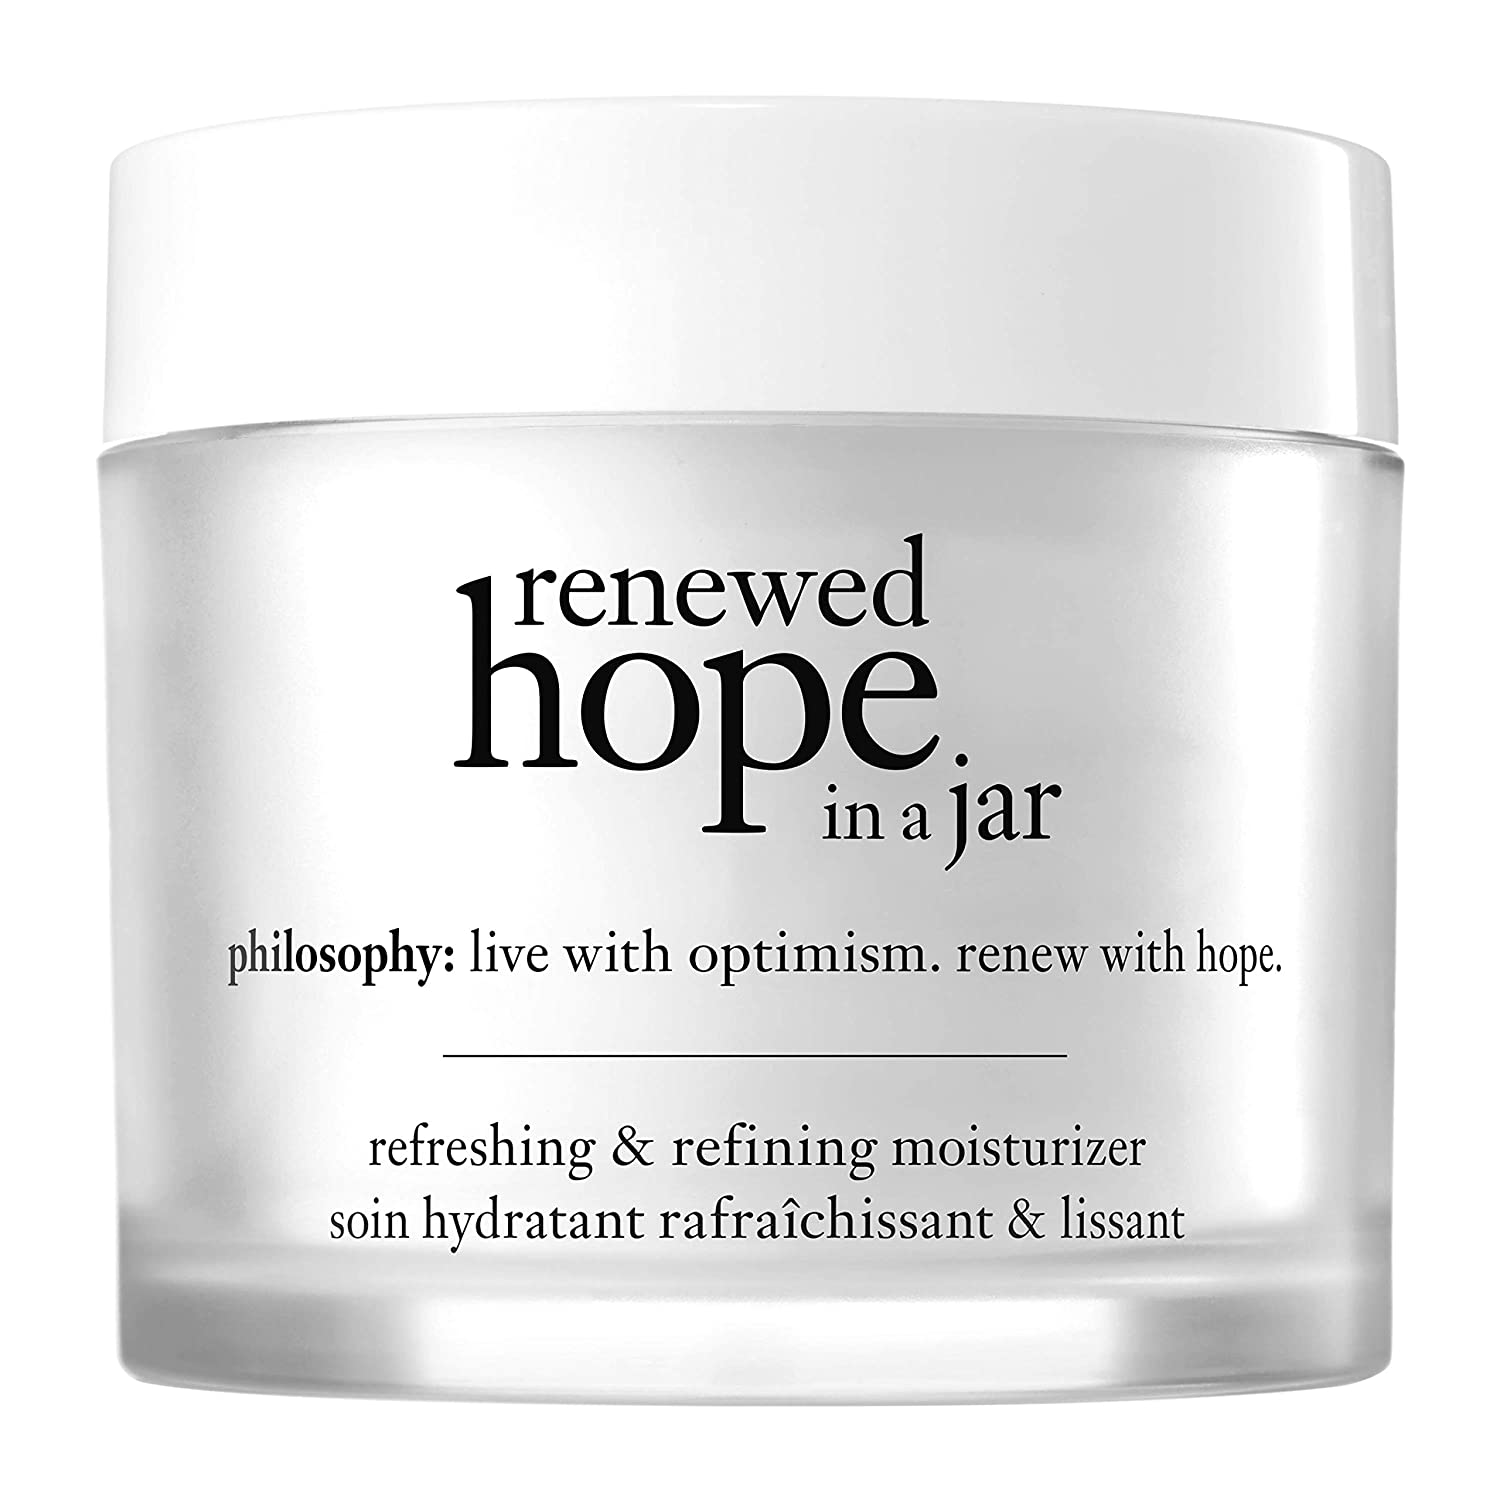 Renewed Hope in a Jar Moisturizer by Philosophy